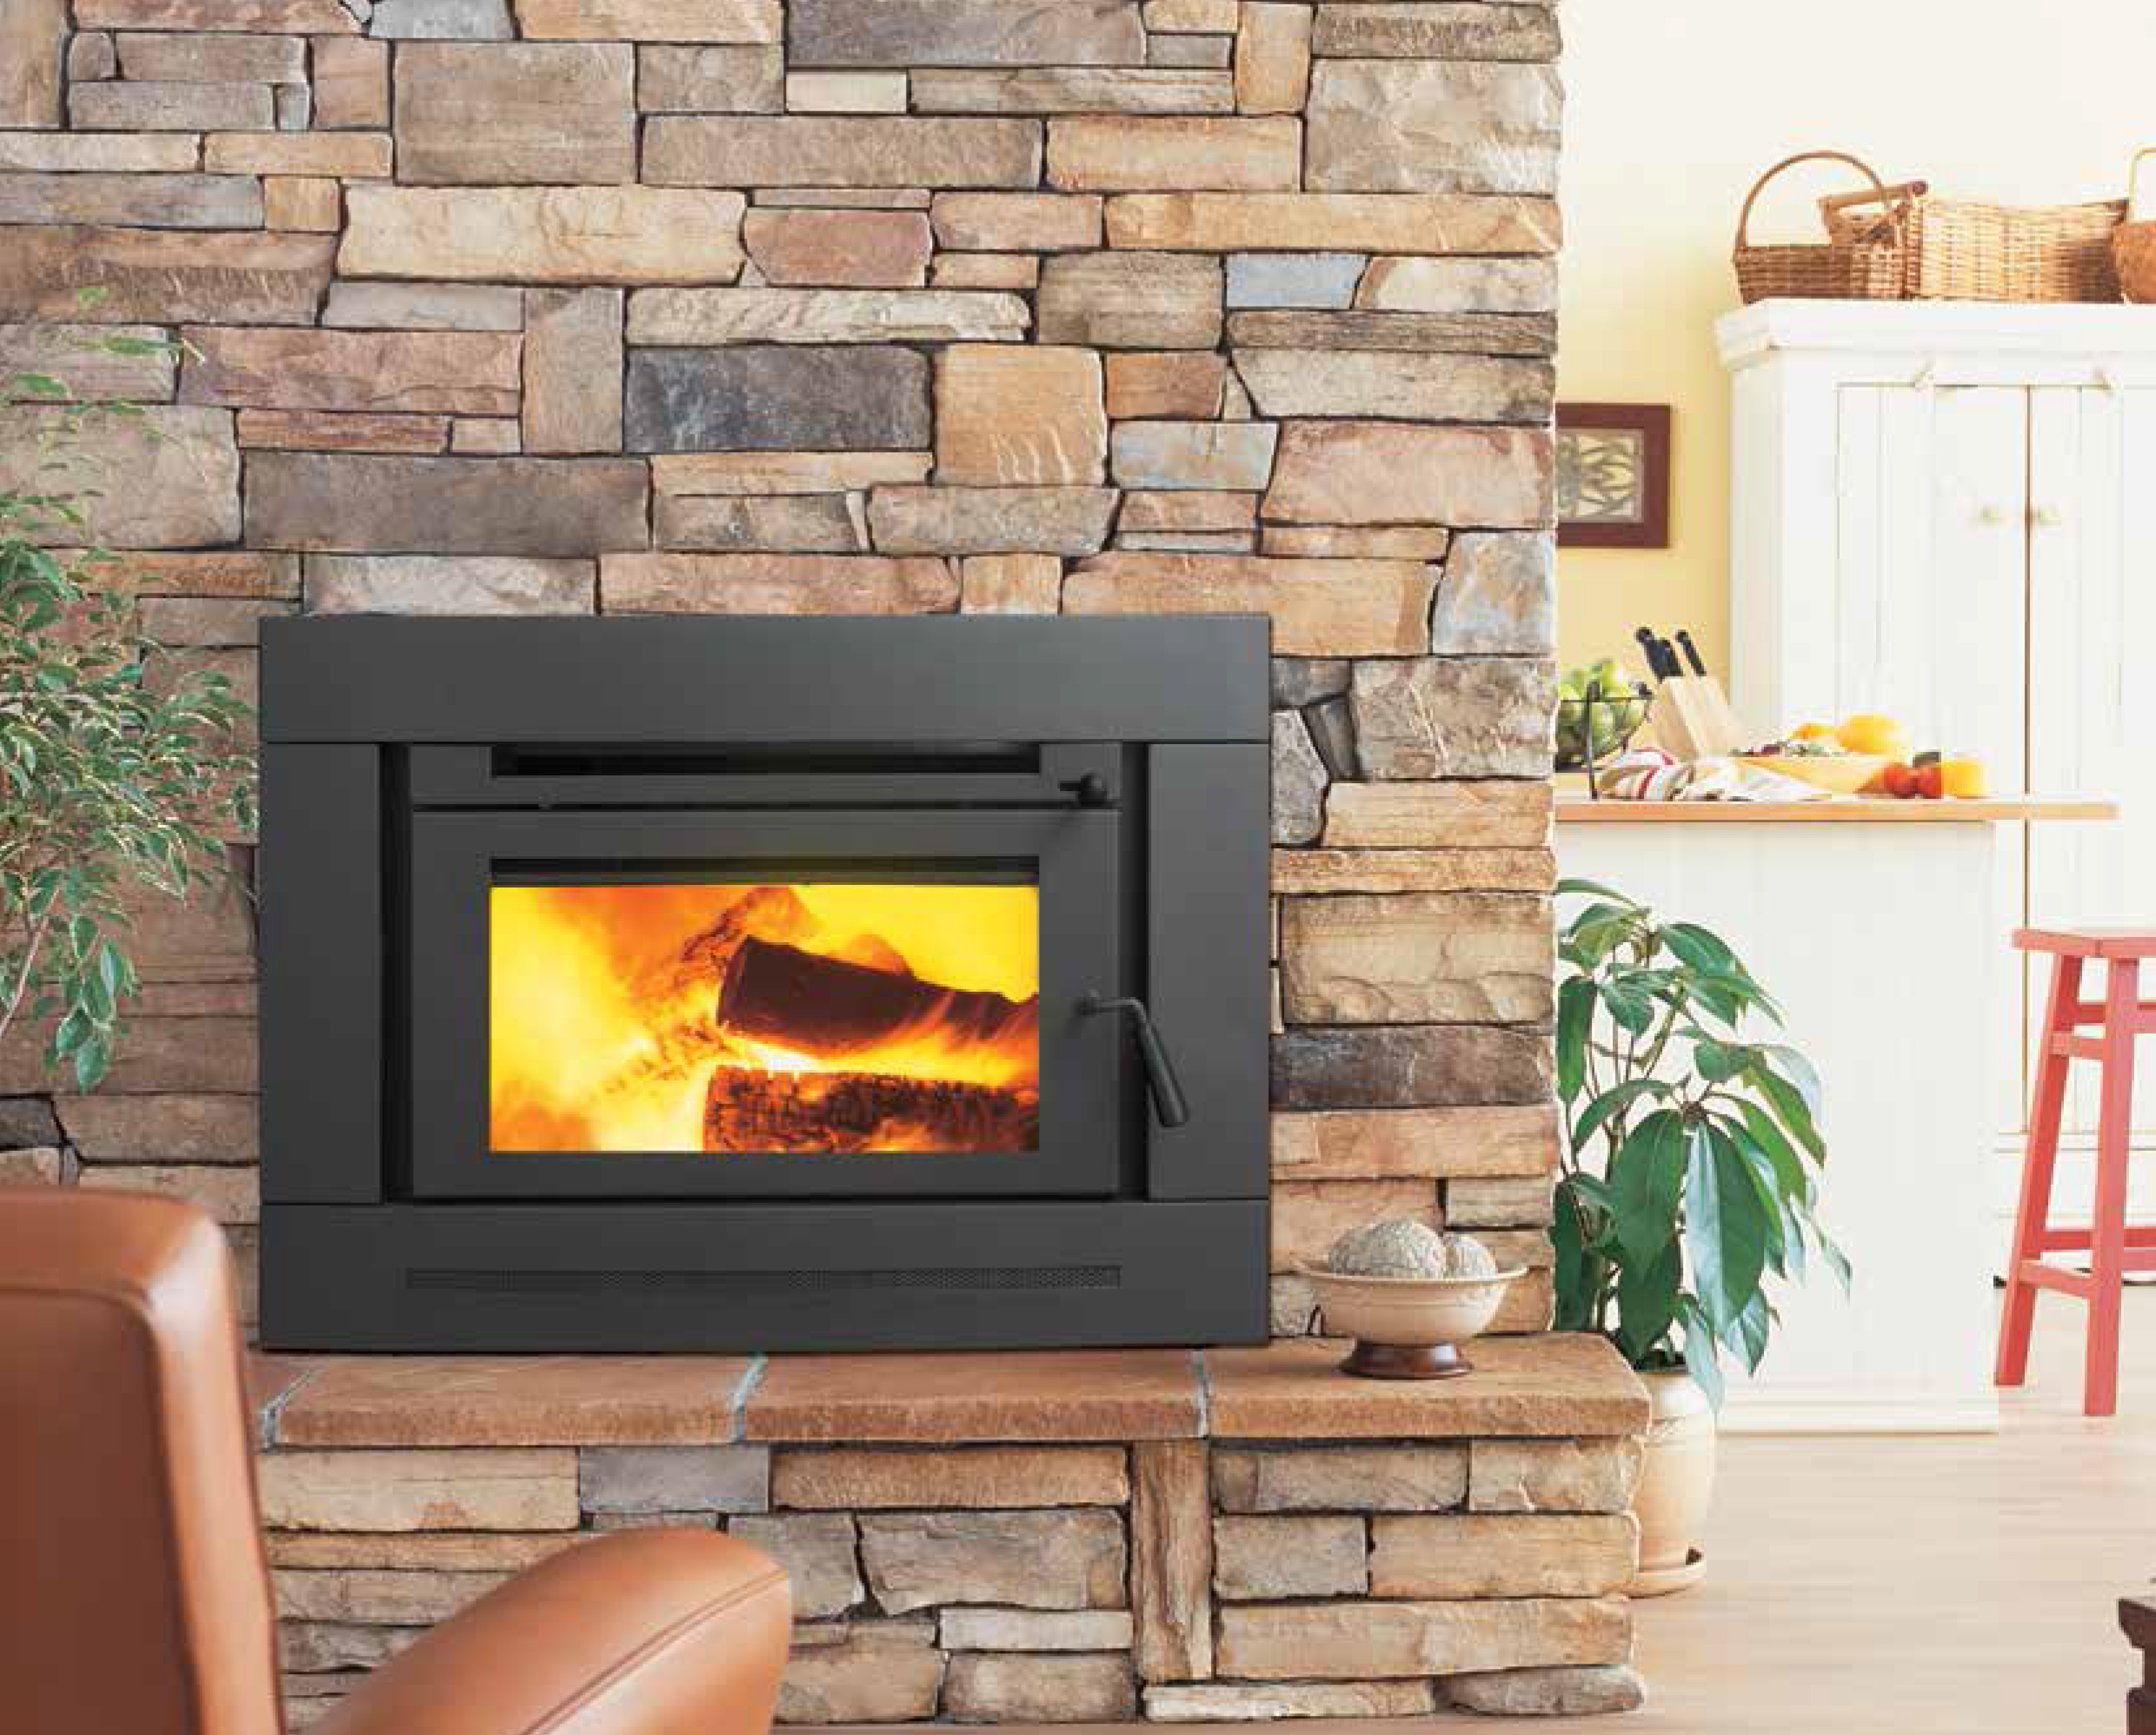 Attractive wood inset fire